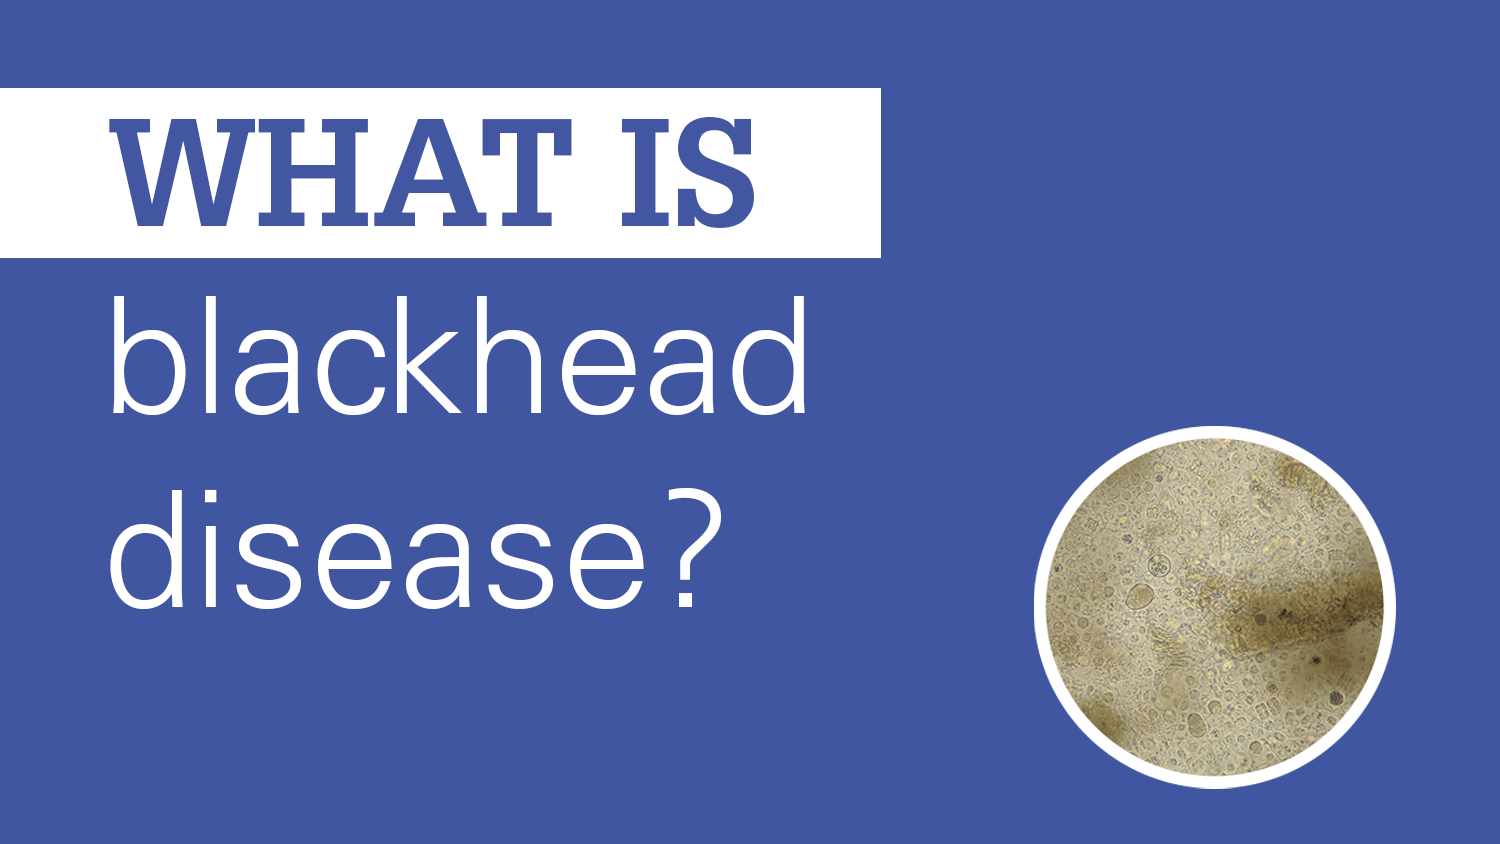 blue background with question 'what is blackhead disease?' and a circular image of histomonas